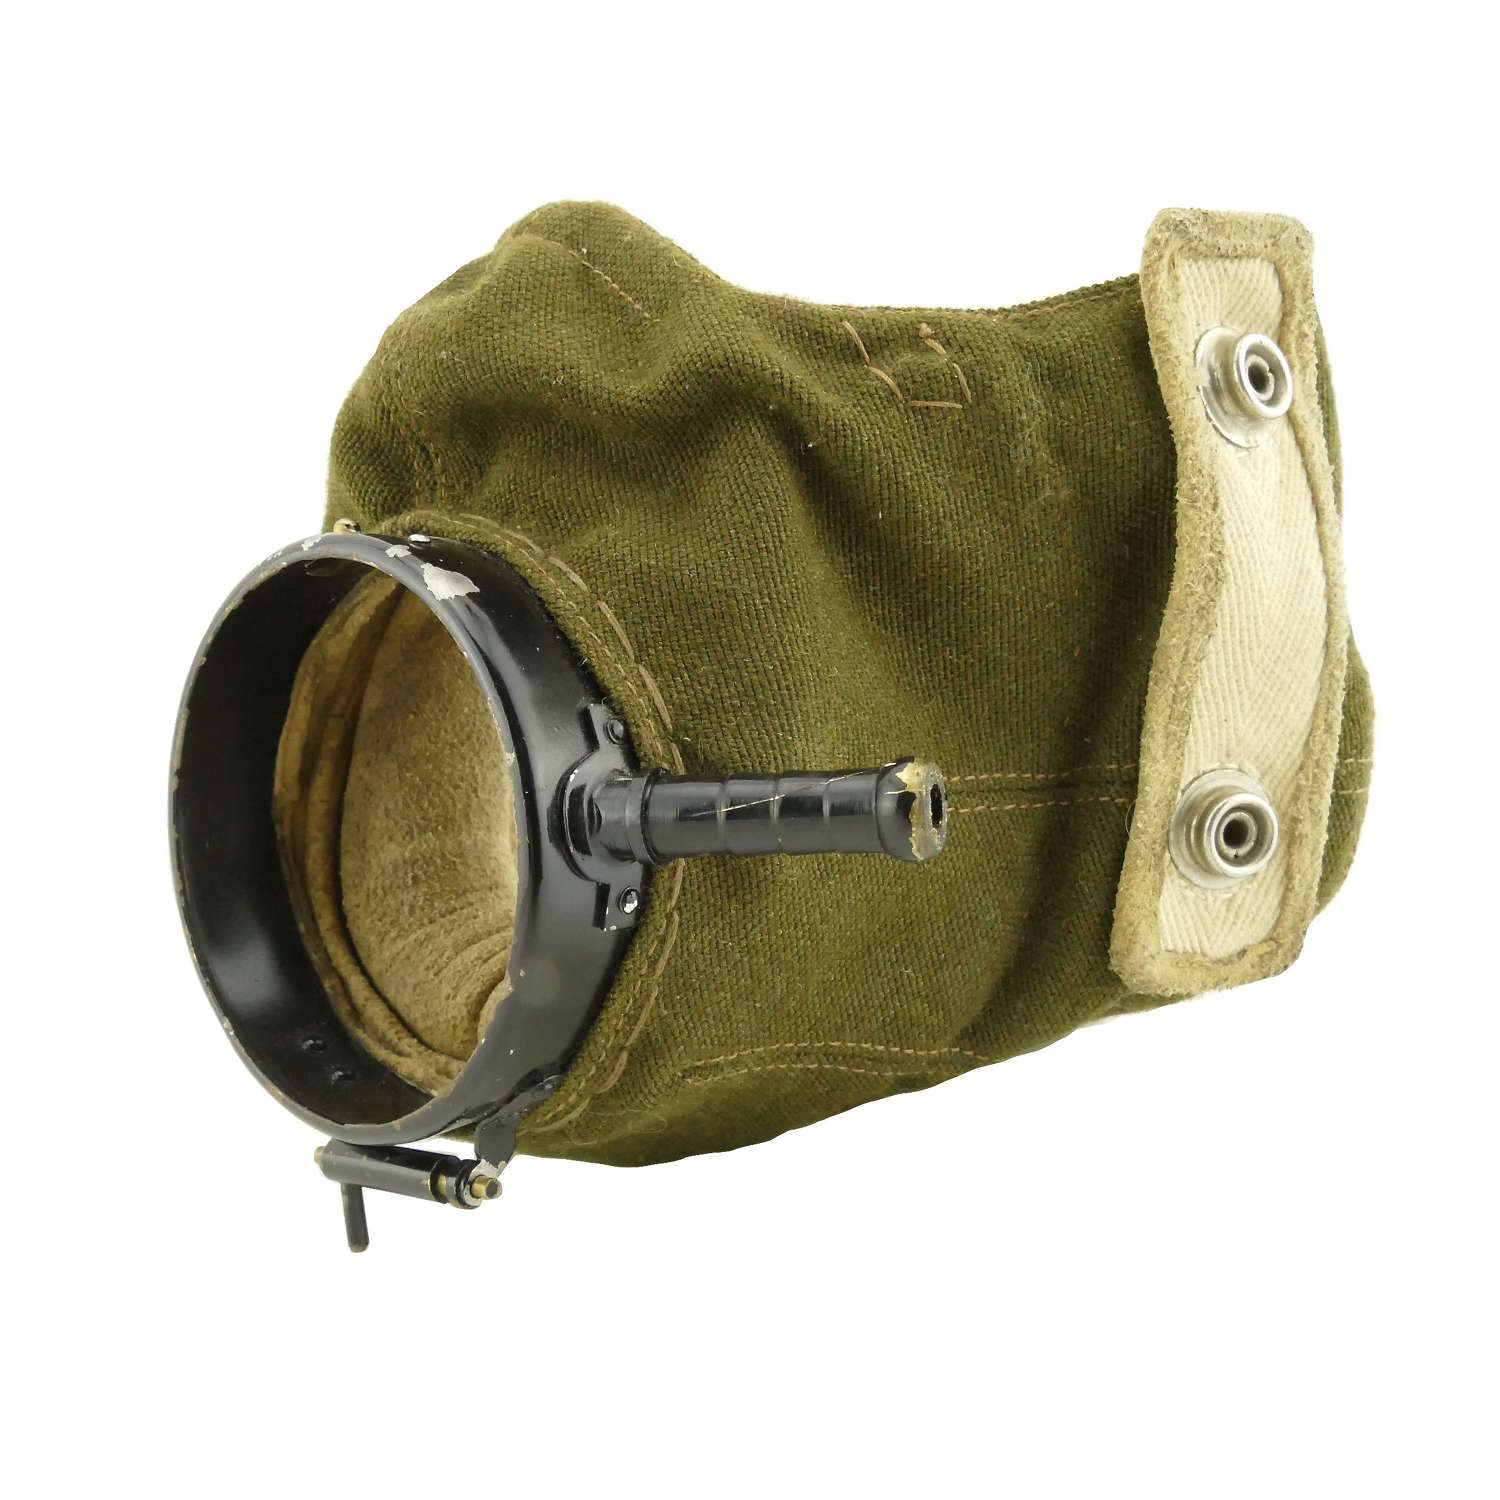 RAF type D oxygen mask, reproduction